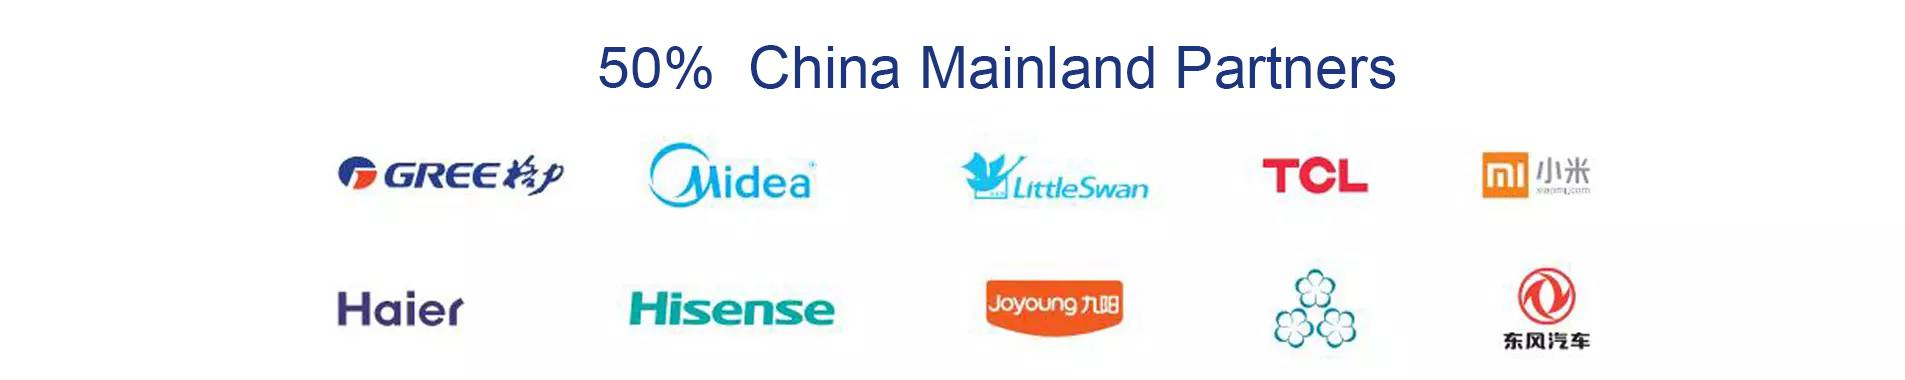 China Mainland Partners-1